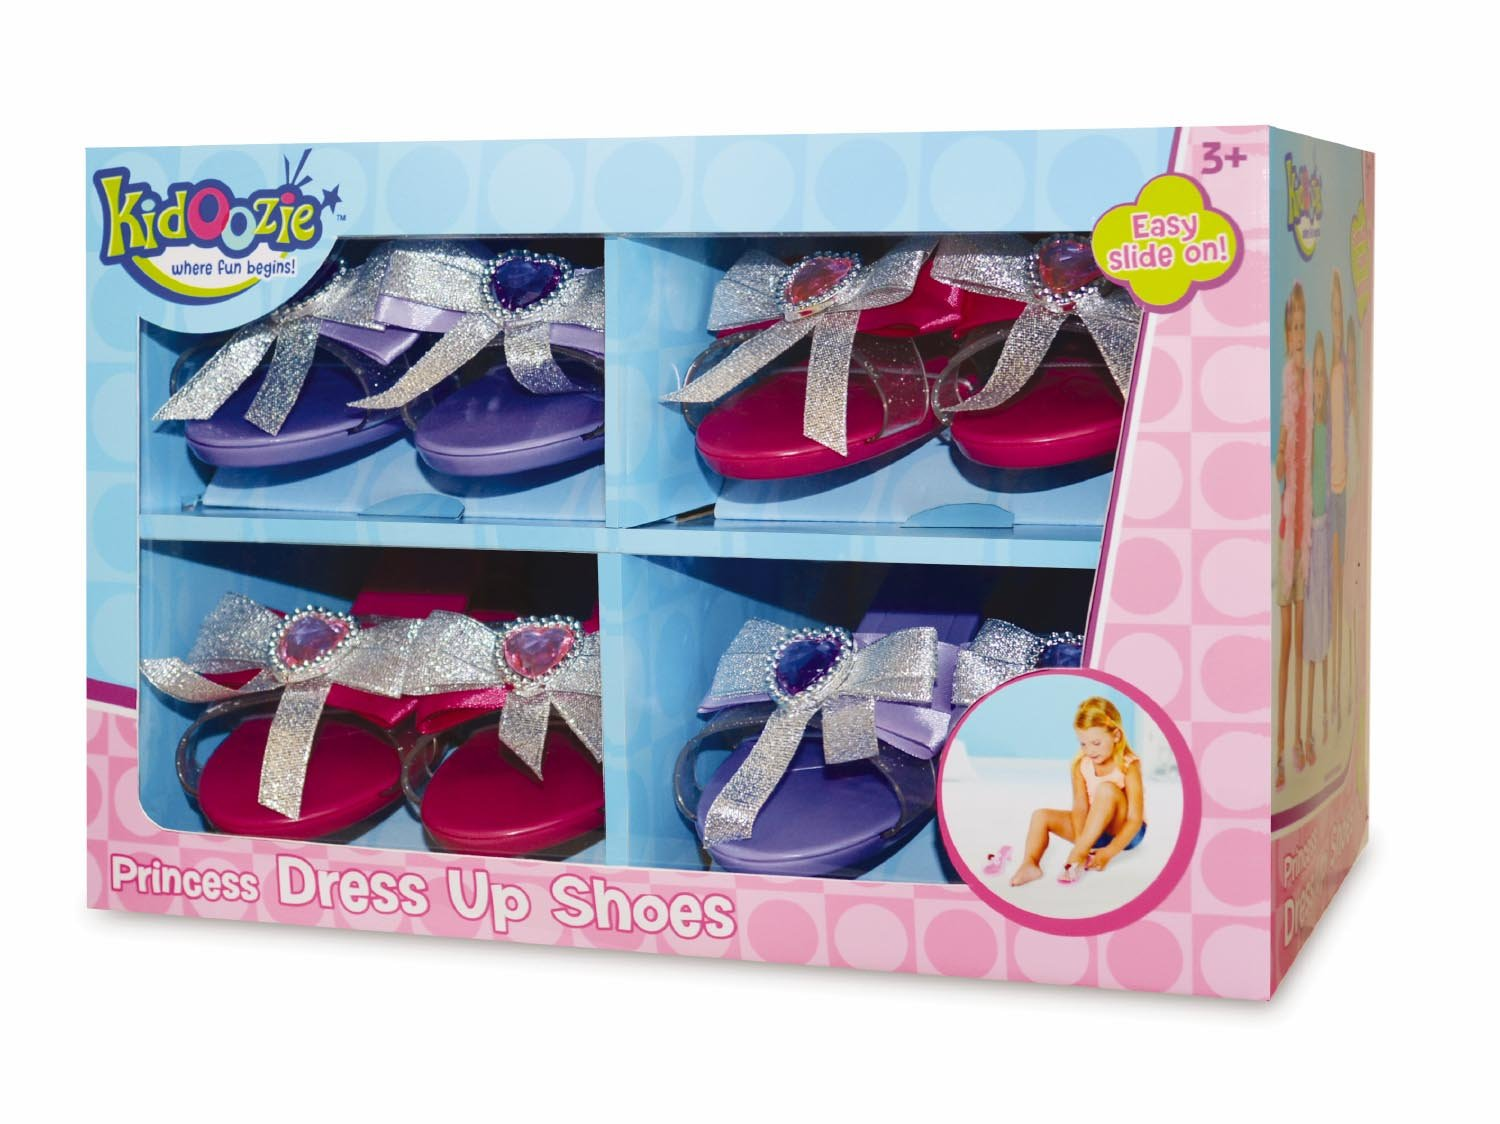 Kidoozie Princess Dress Up Shoes - 4 Unique Pairs of Sparkly Slip-On Pretend Play Heels Adorned with Jewels & Ribbons